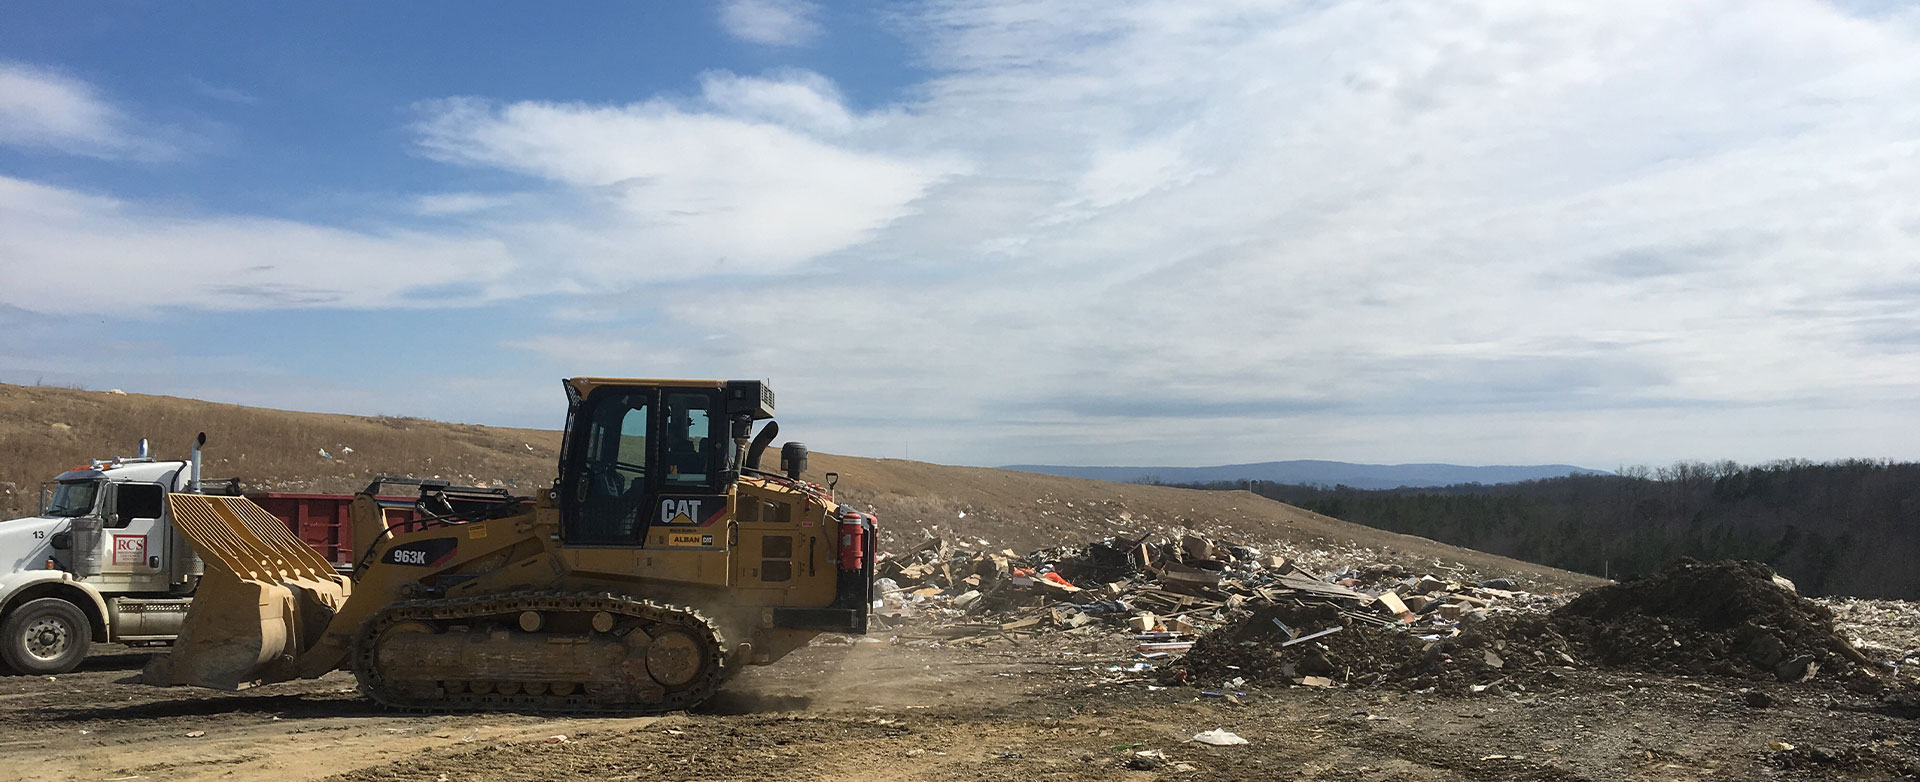 Landfill and Solid Waste | Frederick County